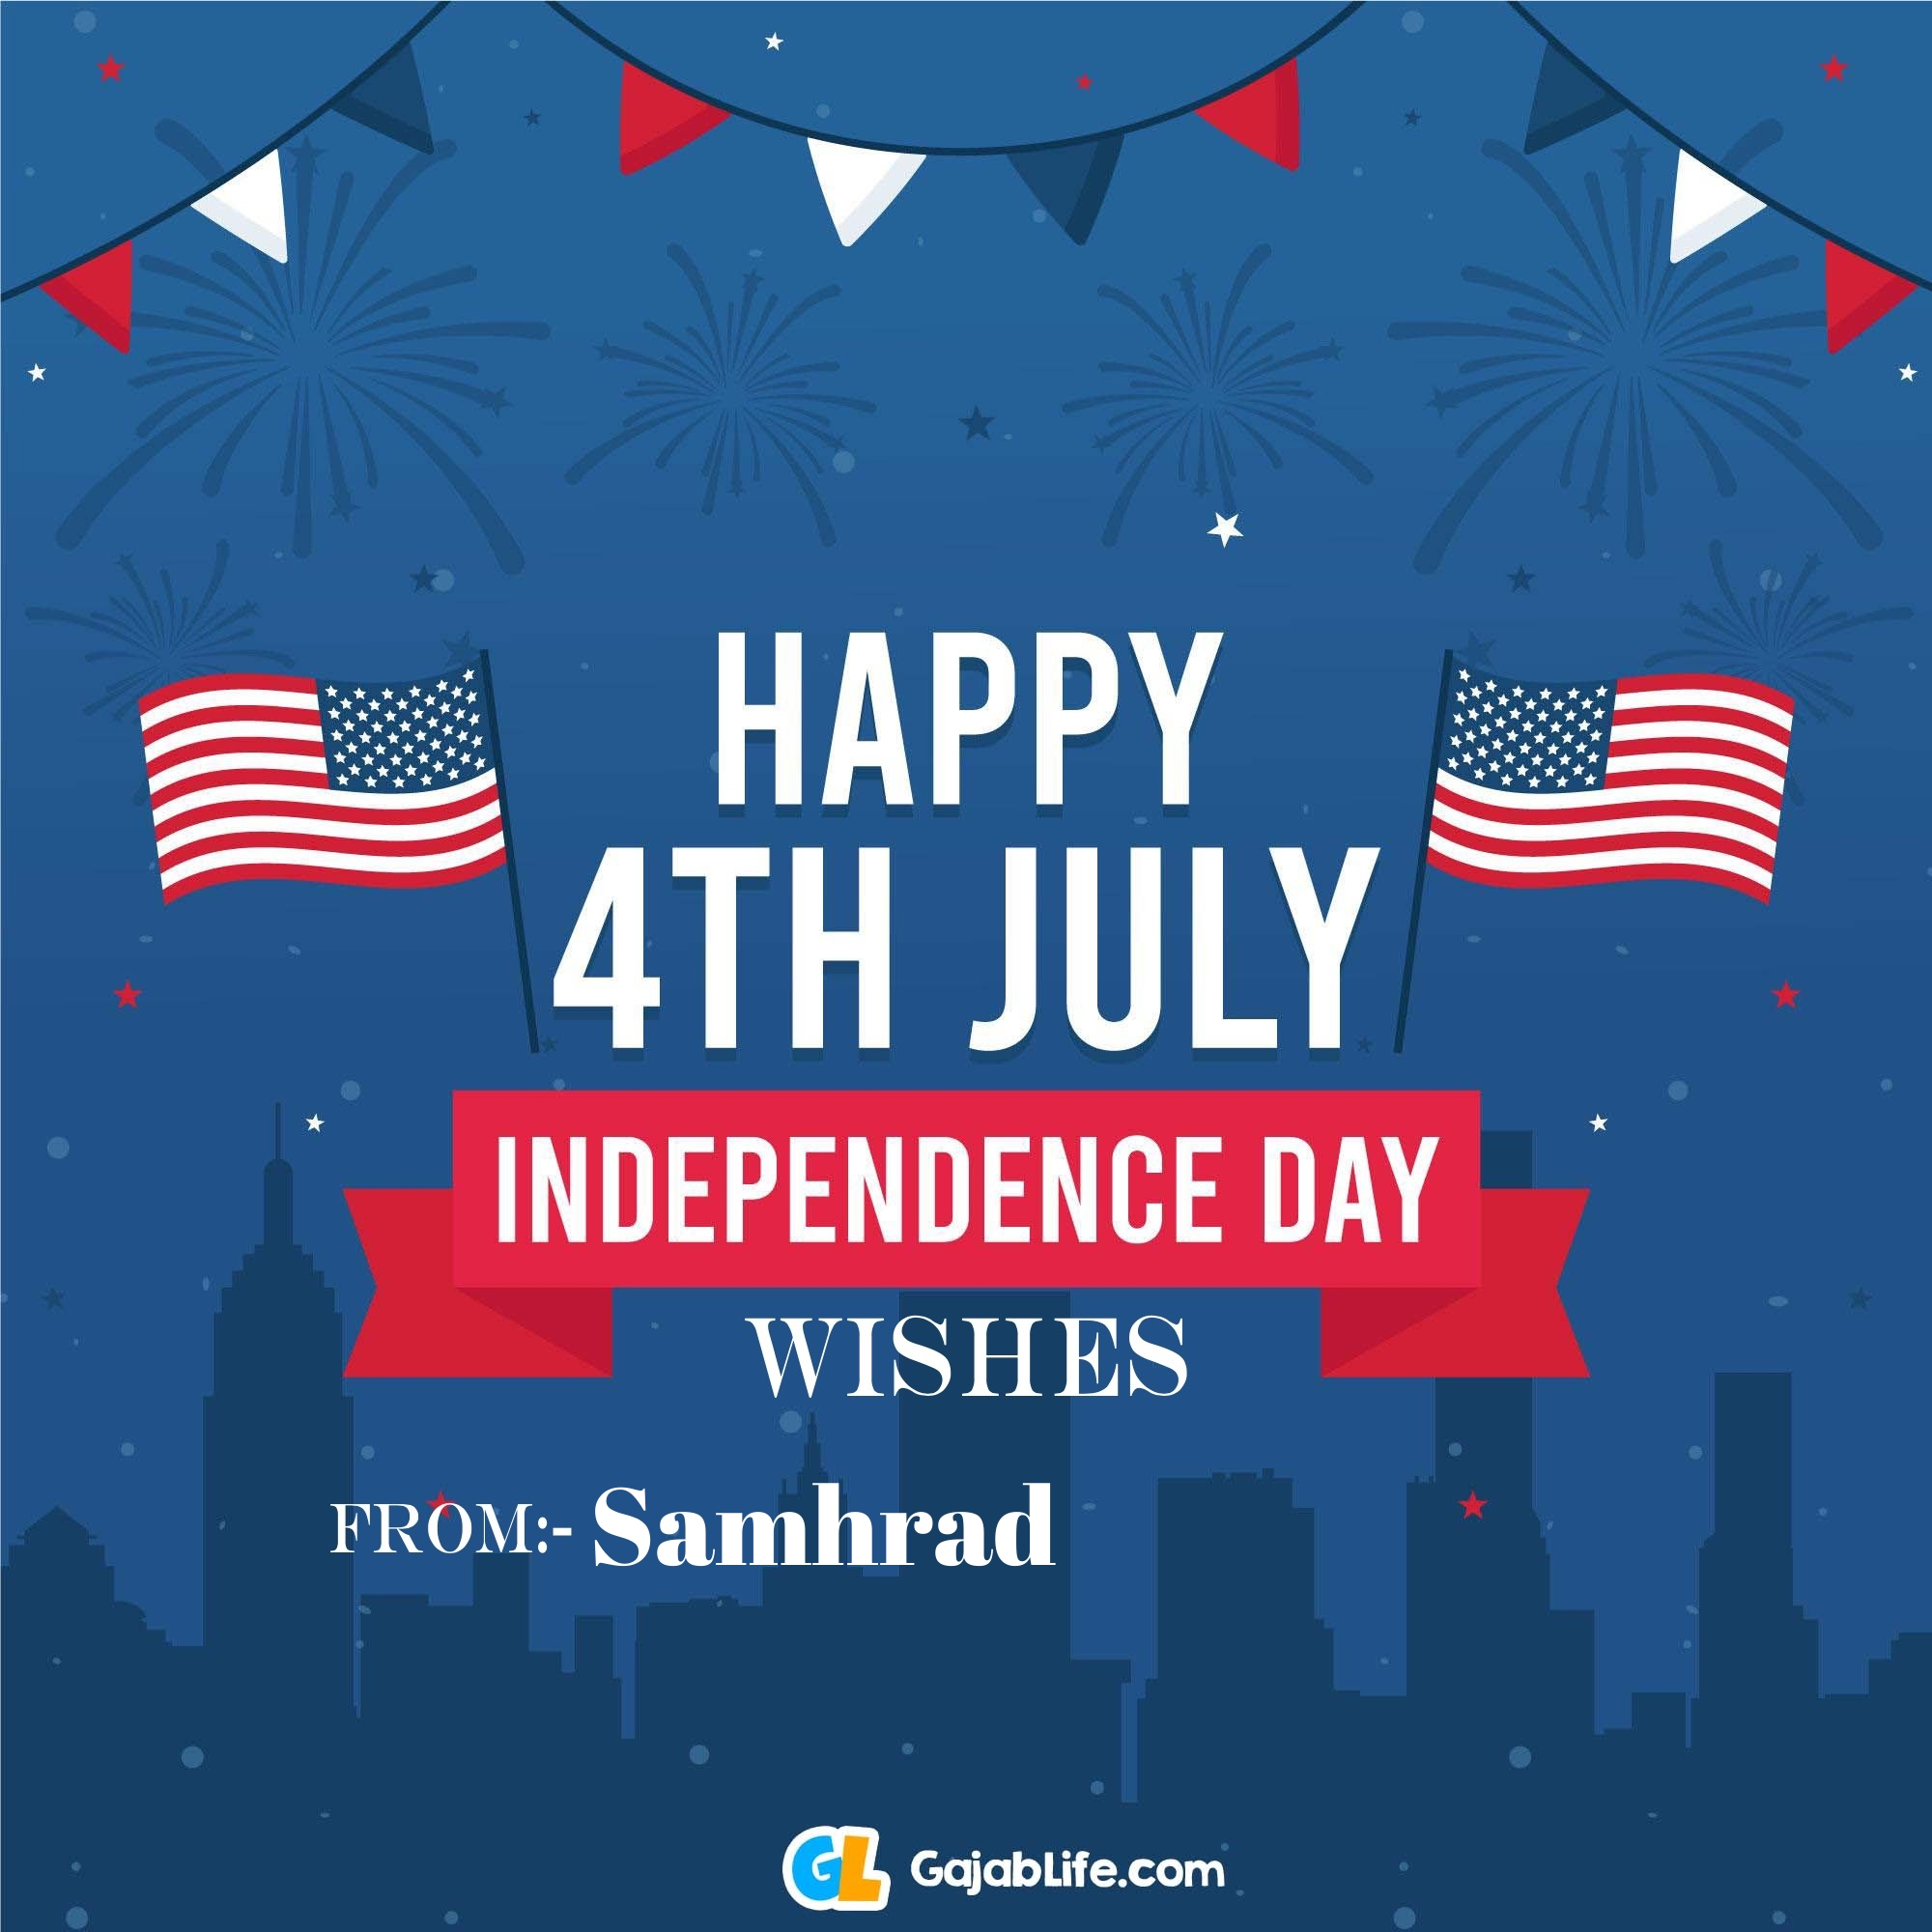 Samhrad happy independence day united states of america images